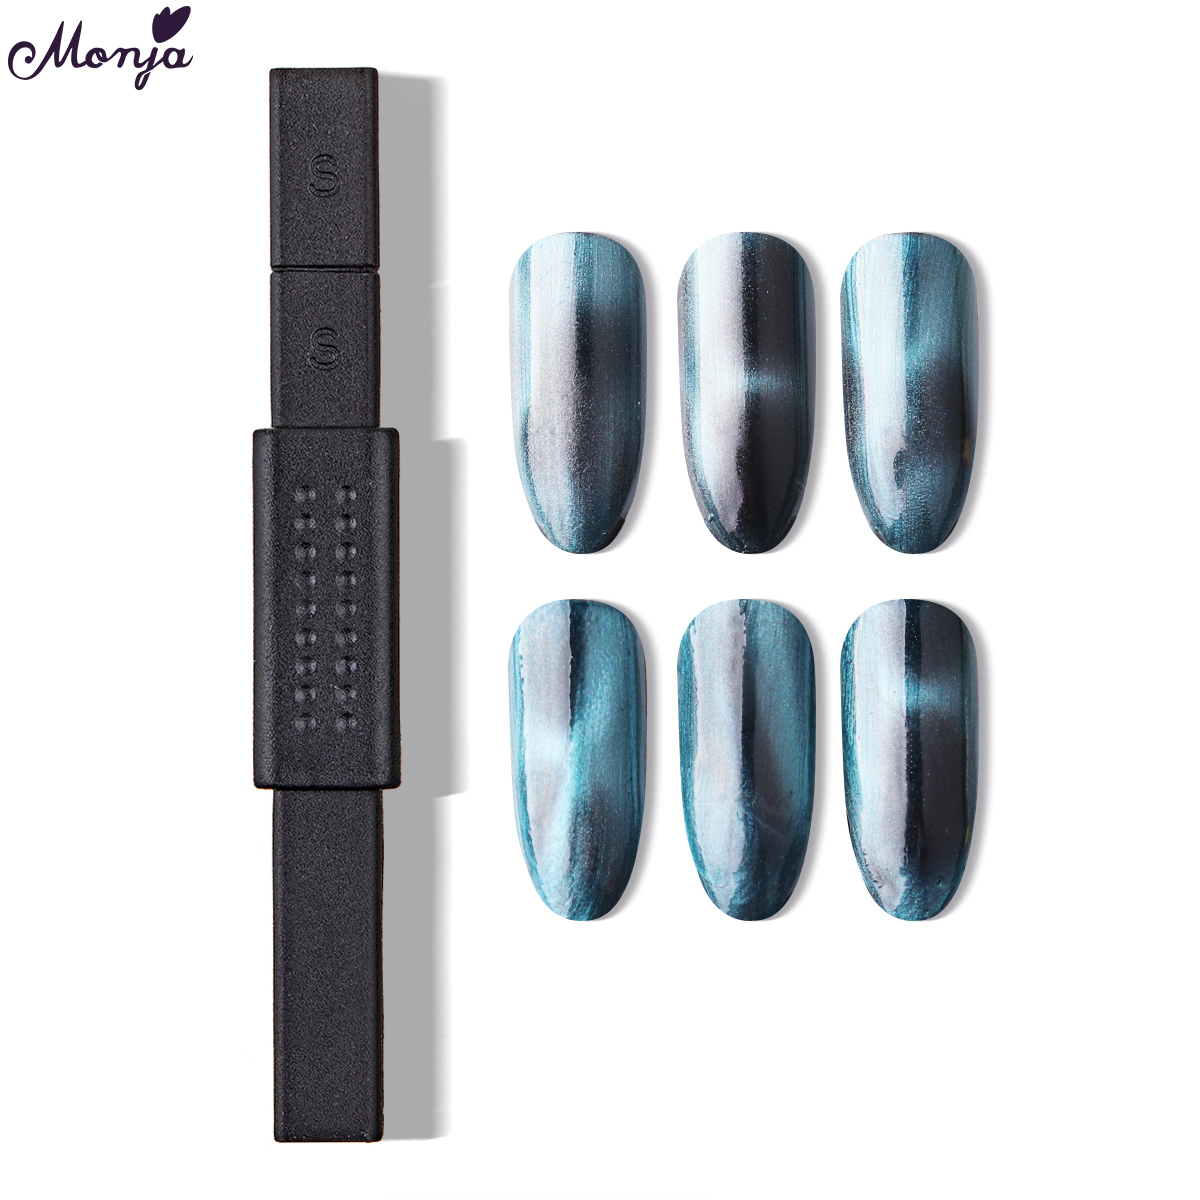 Monja Dual End Nail Art 3D Magical Gel Polish Cat Eye Effect Strong Magnetic Magnet Stick Manicure Tool